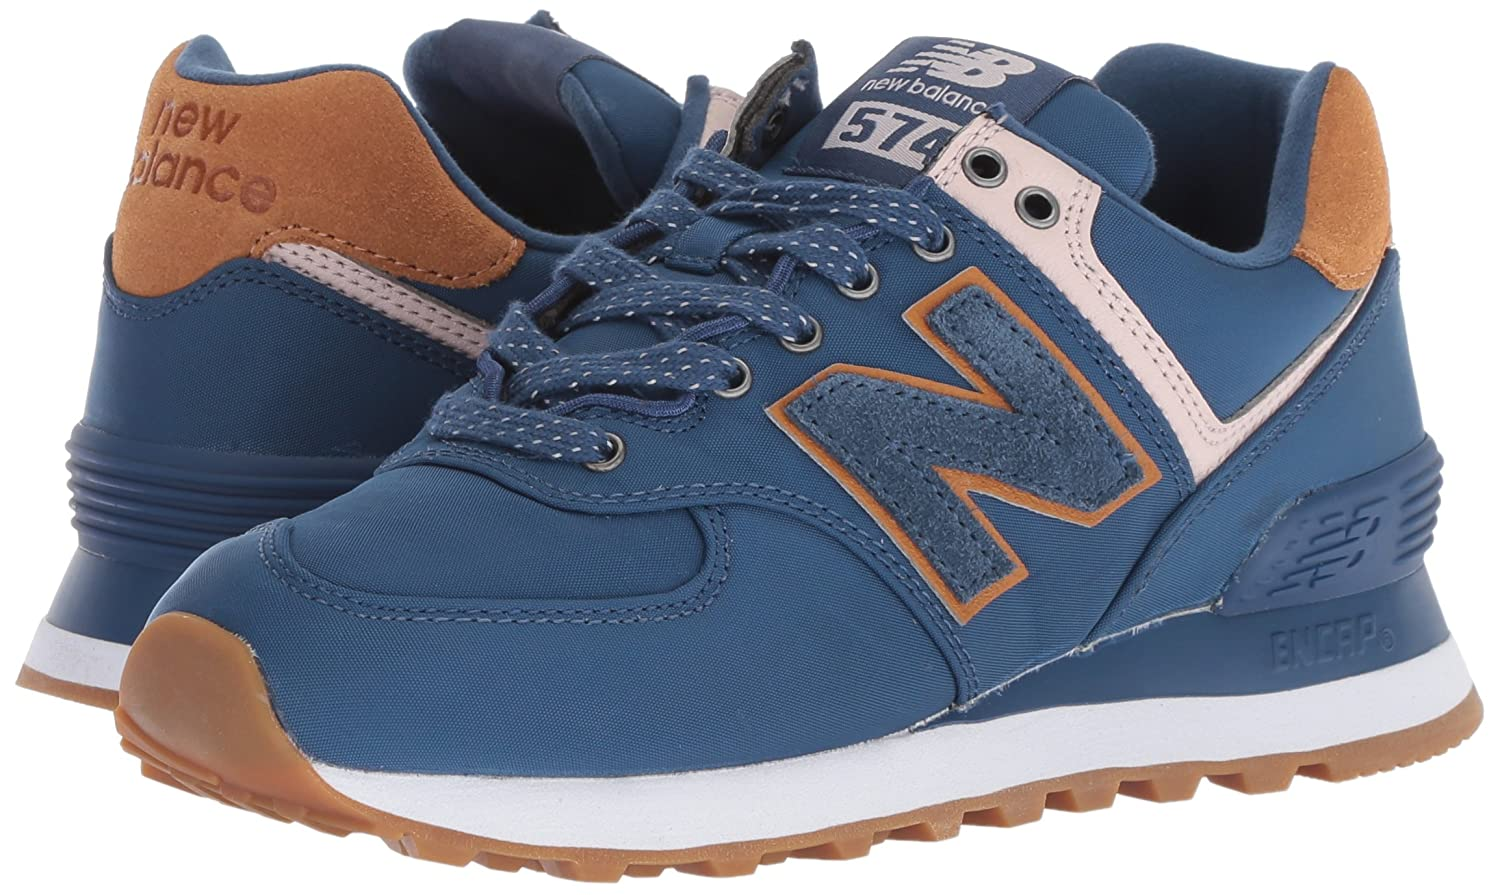 New Balance Women's B(M) 574v2 Sneaker B075R7N681 8 B(M) Women's US|Moroccan Tile 44f7a9